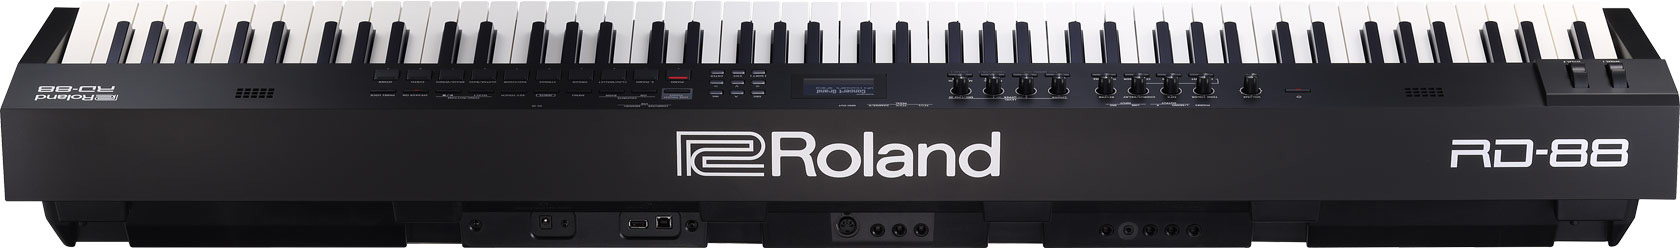 Roland RD 88 stage piano SuperNATURAL Piano E Piano ZEN Core rear